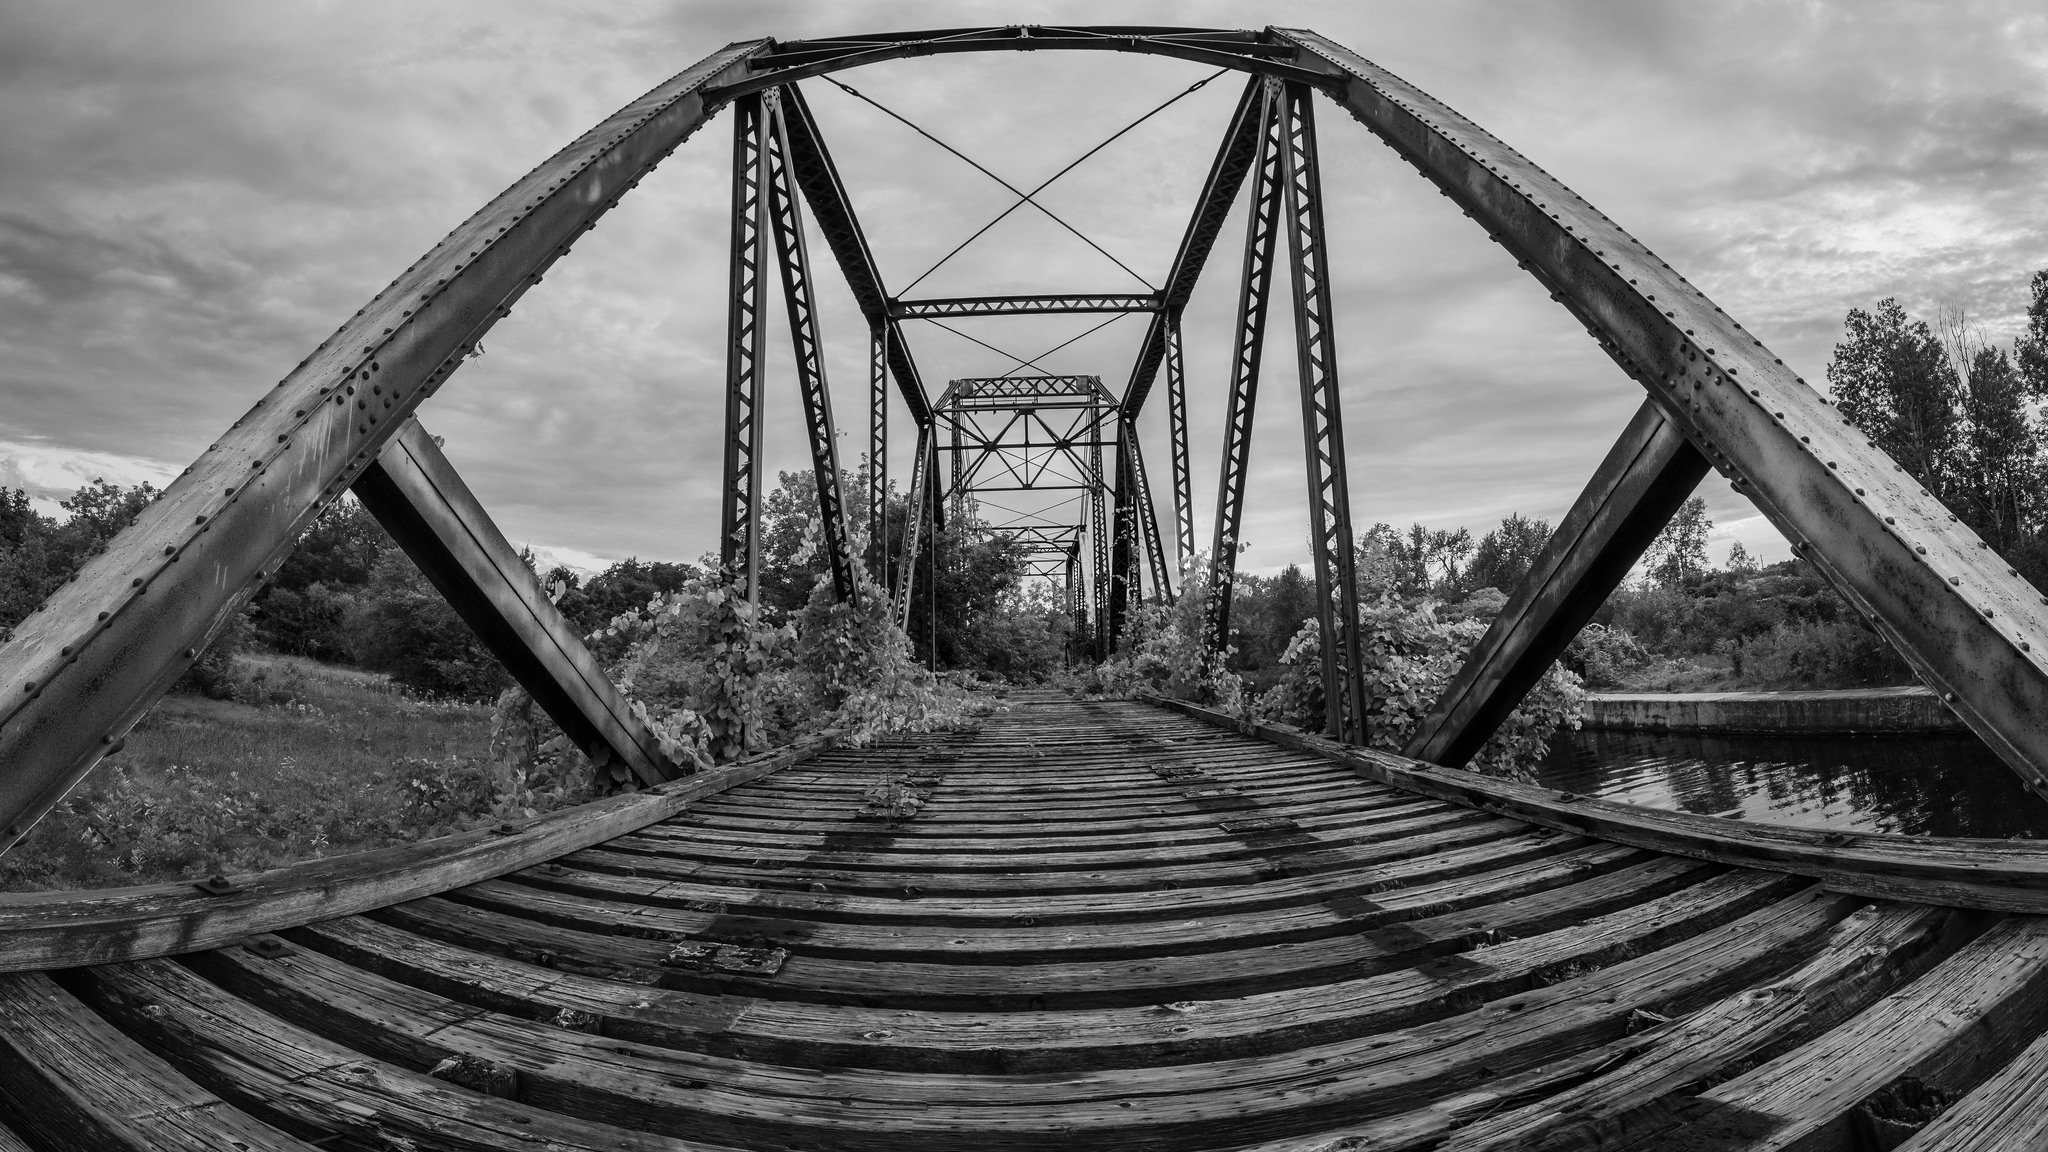 Old Swinging Rail Bridge (1/125s, f/8, ISO800)